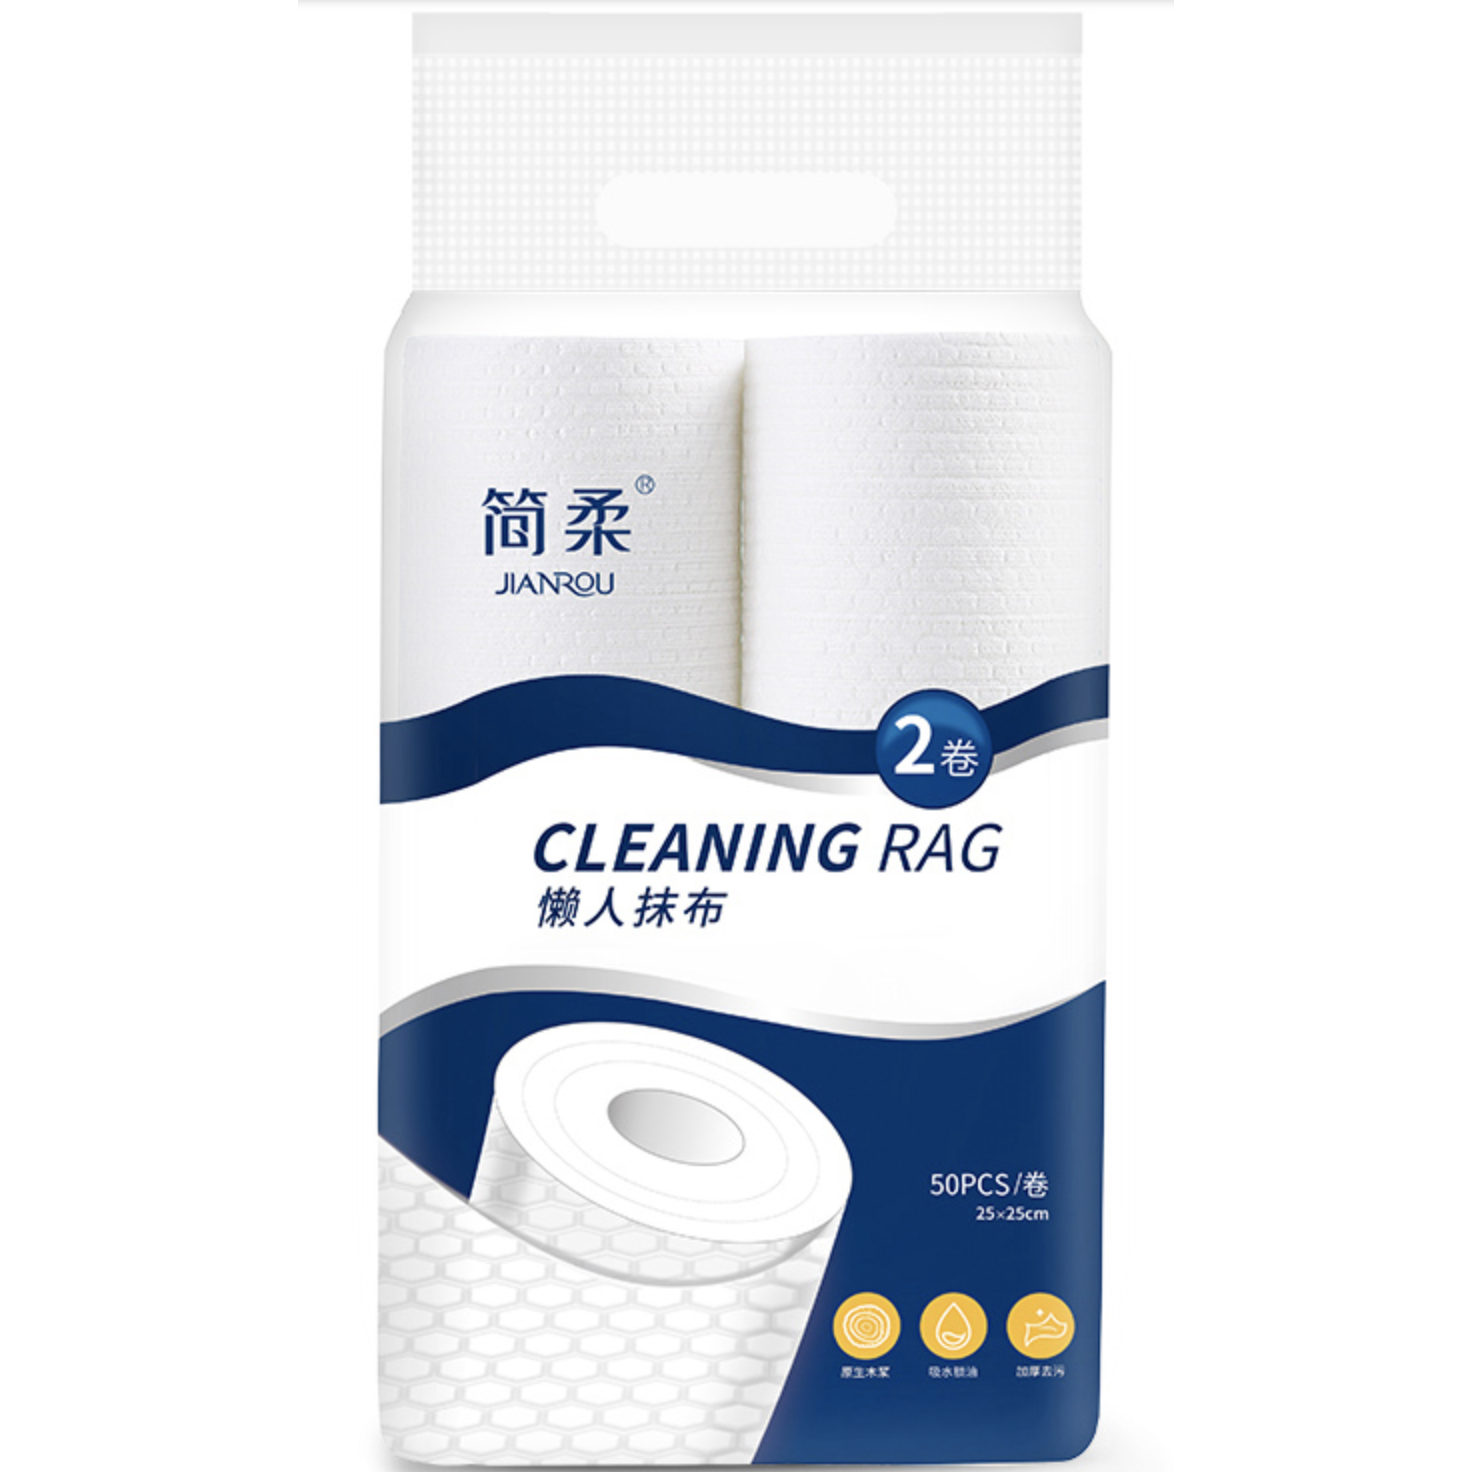 Yamibuy.com:Customer reviews:JIANROU One Time Use Disposable Wiping Cleaning Cloth 50 pieces